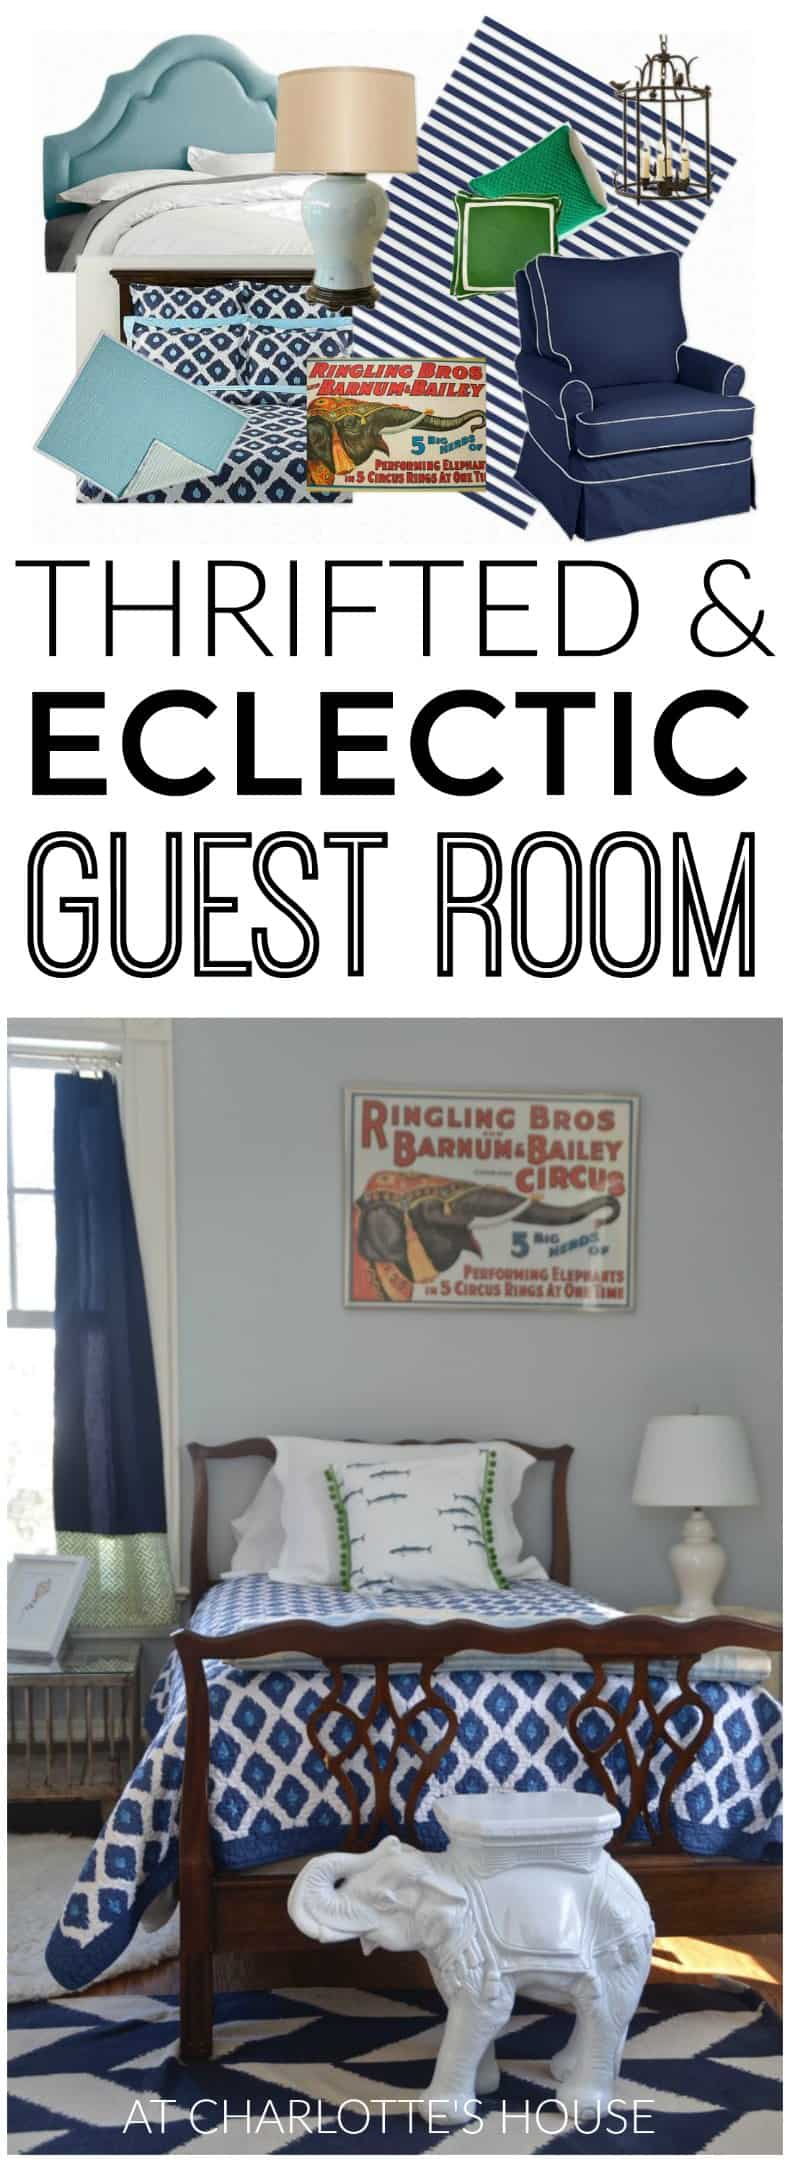 This guest room is filled with flea market and thrift scores!